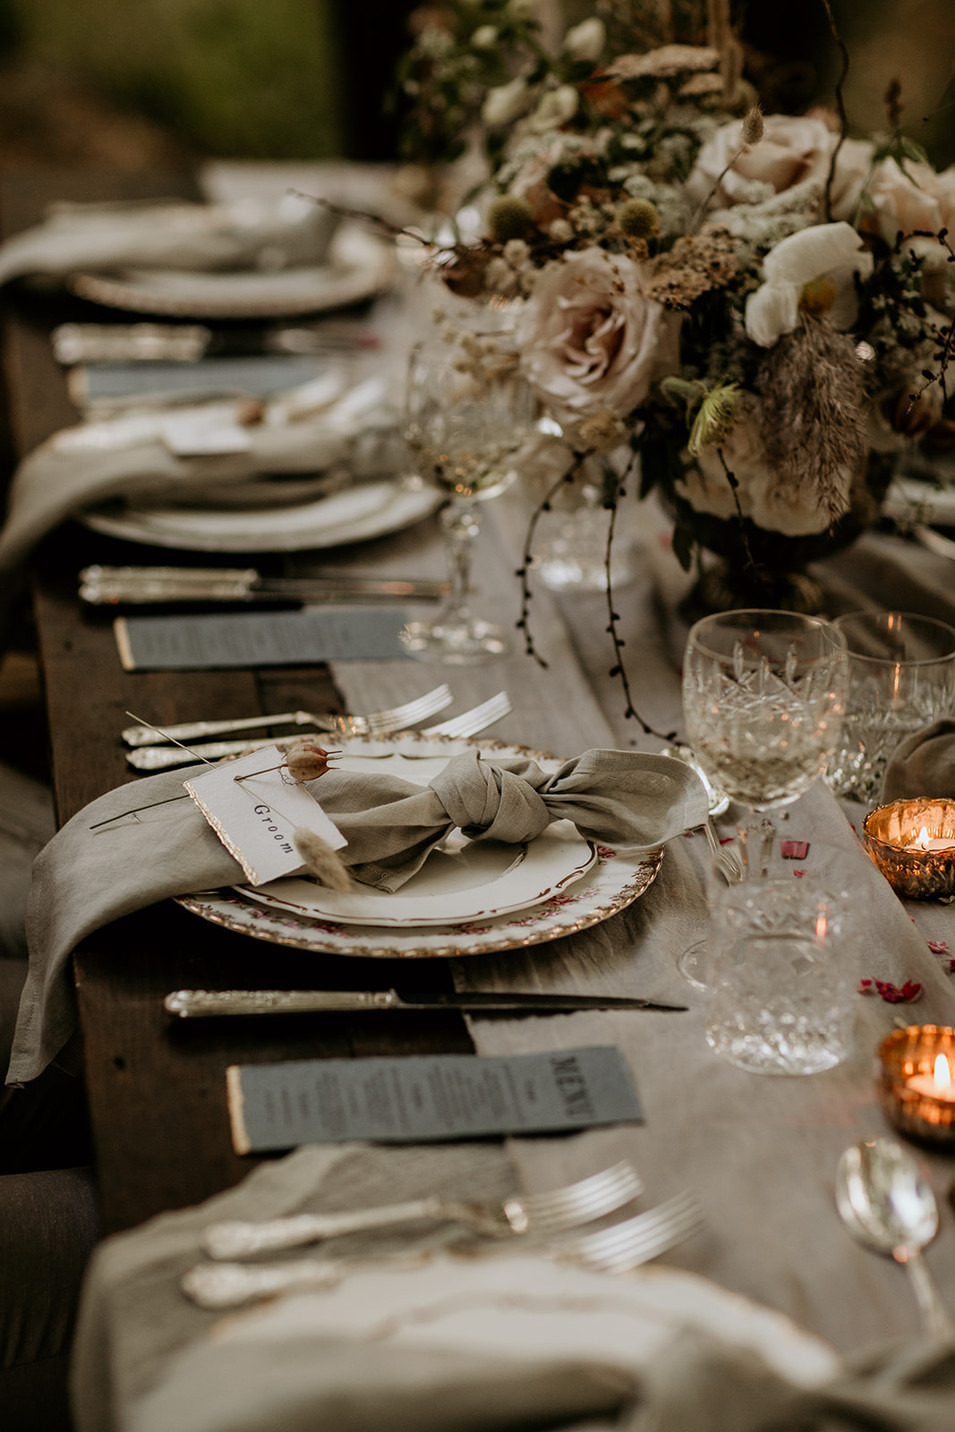 An example of a wedding table set up.